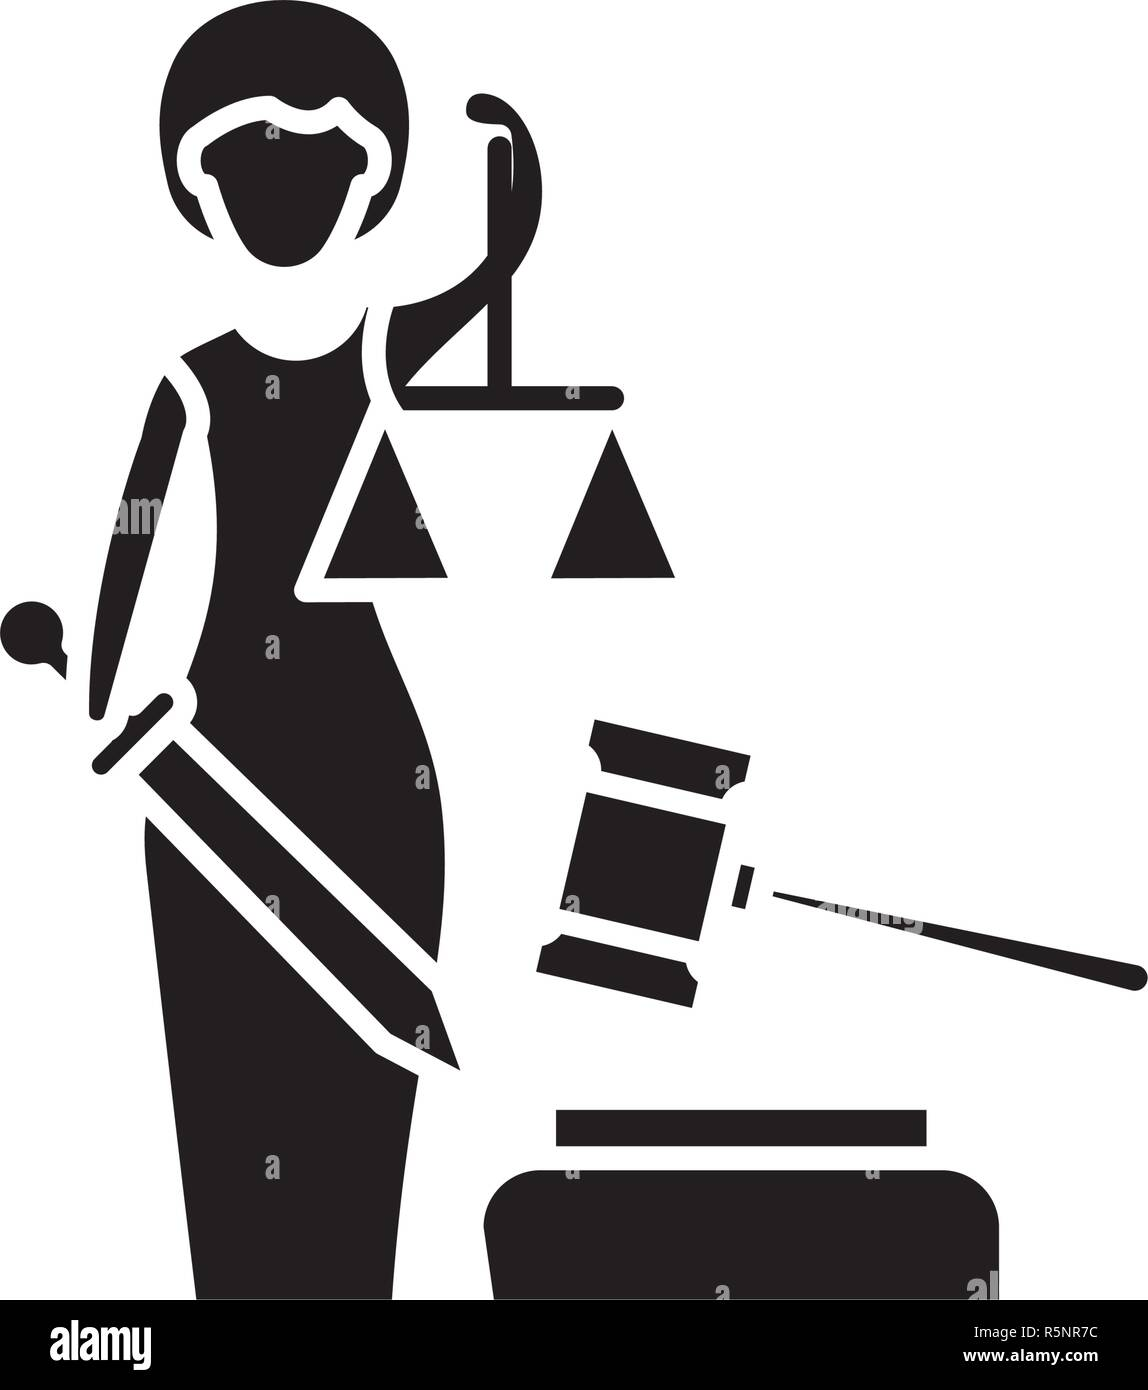 Justice black icon, vector sign on isolated background. Justice concept symbol, illustration  - Stock Vector